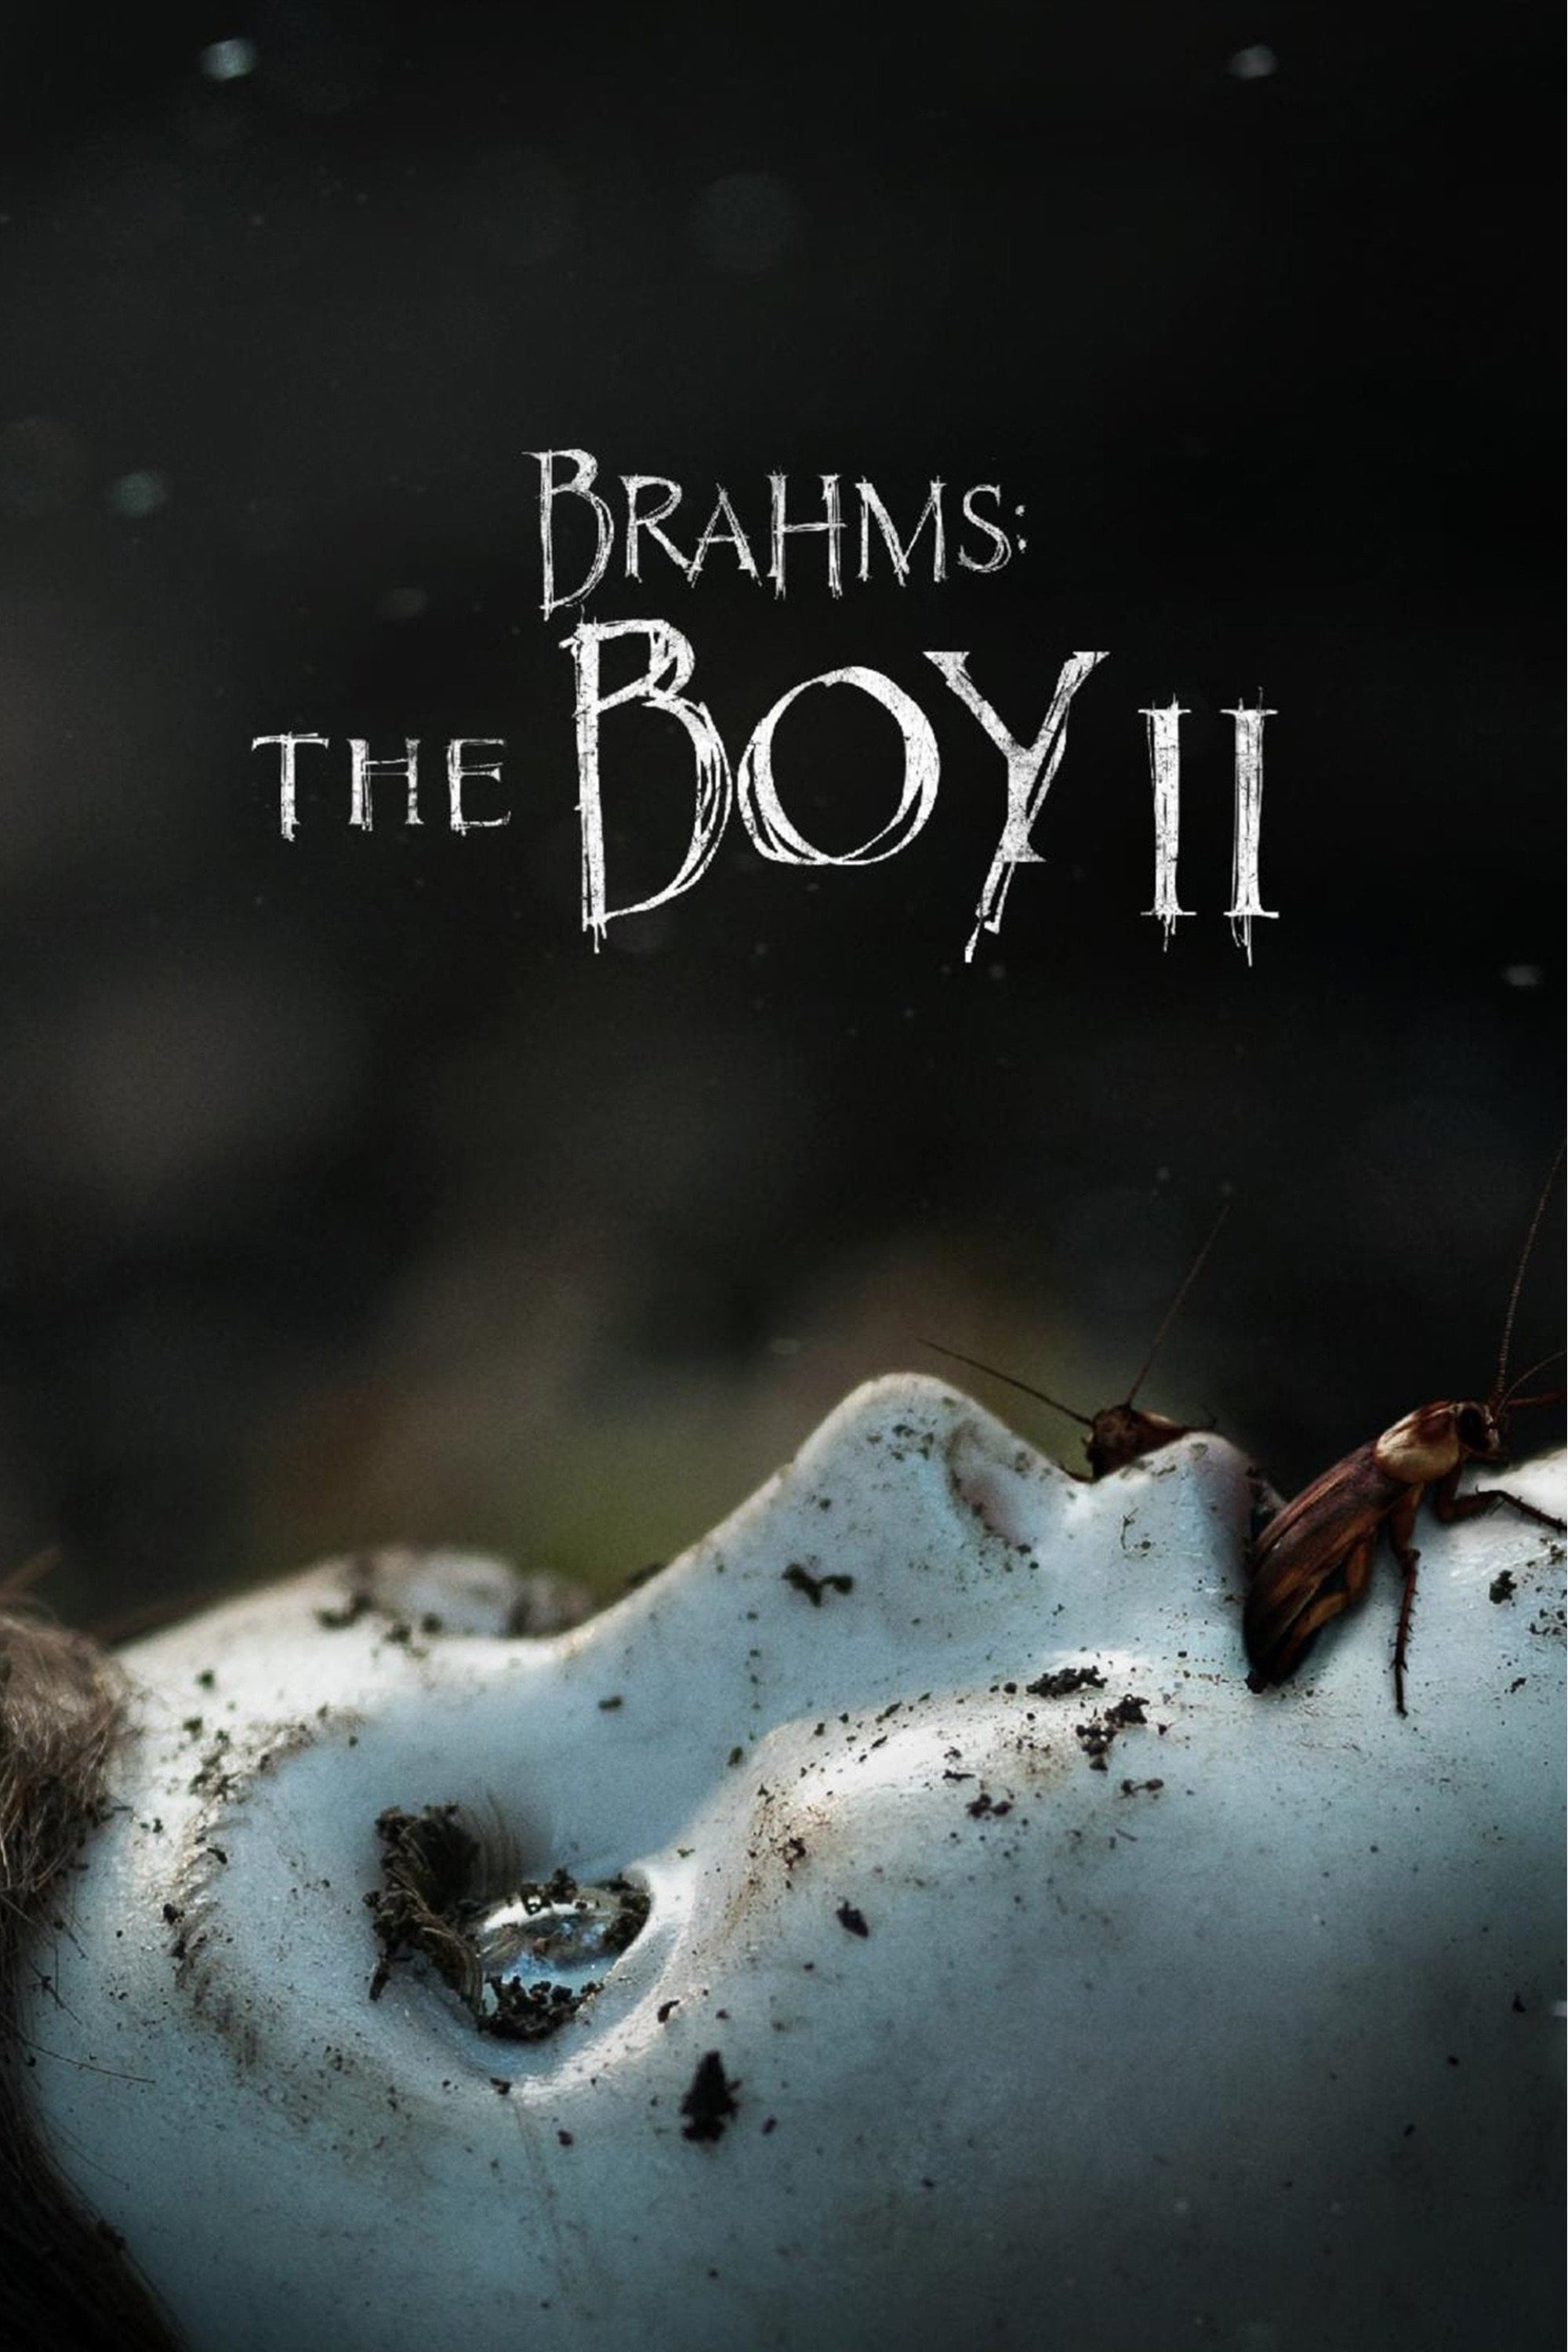 Brahms: The Boy II (2020) Subtitle Indonesia